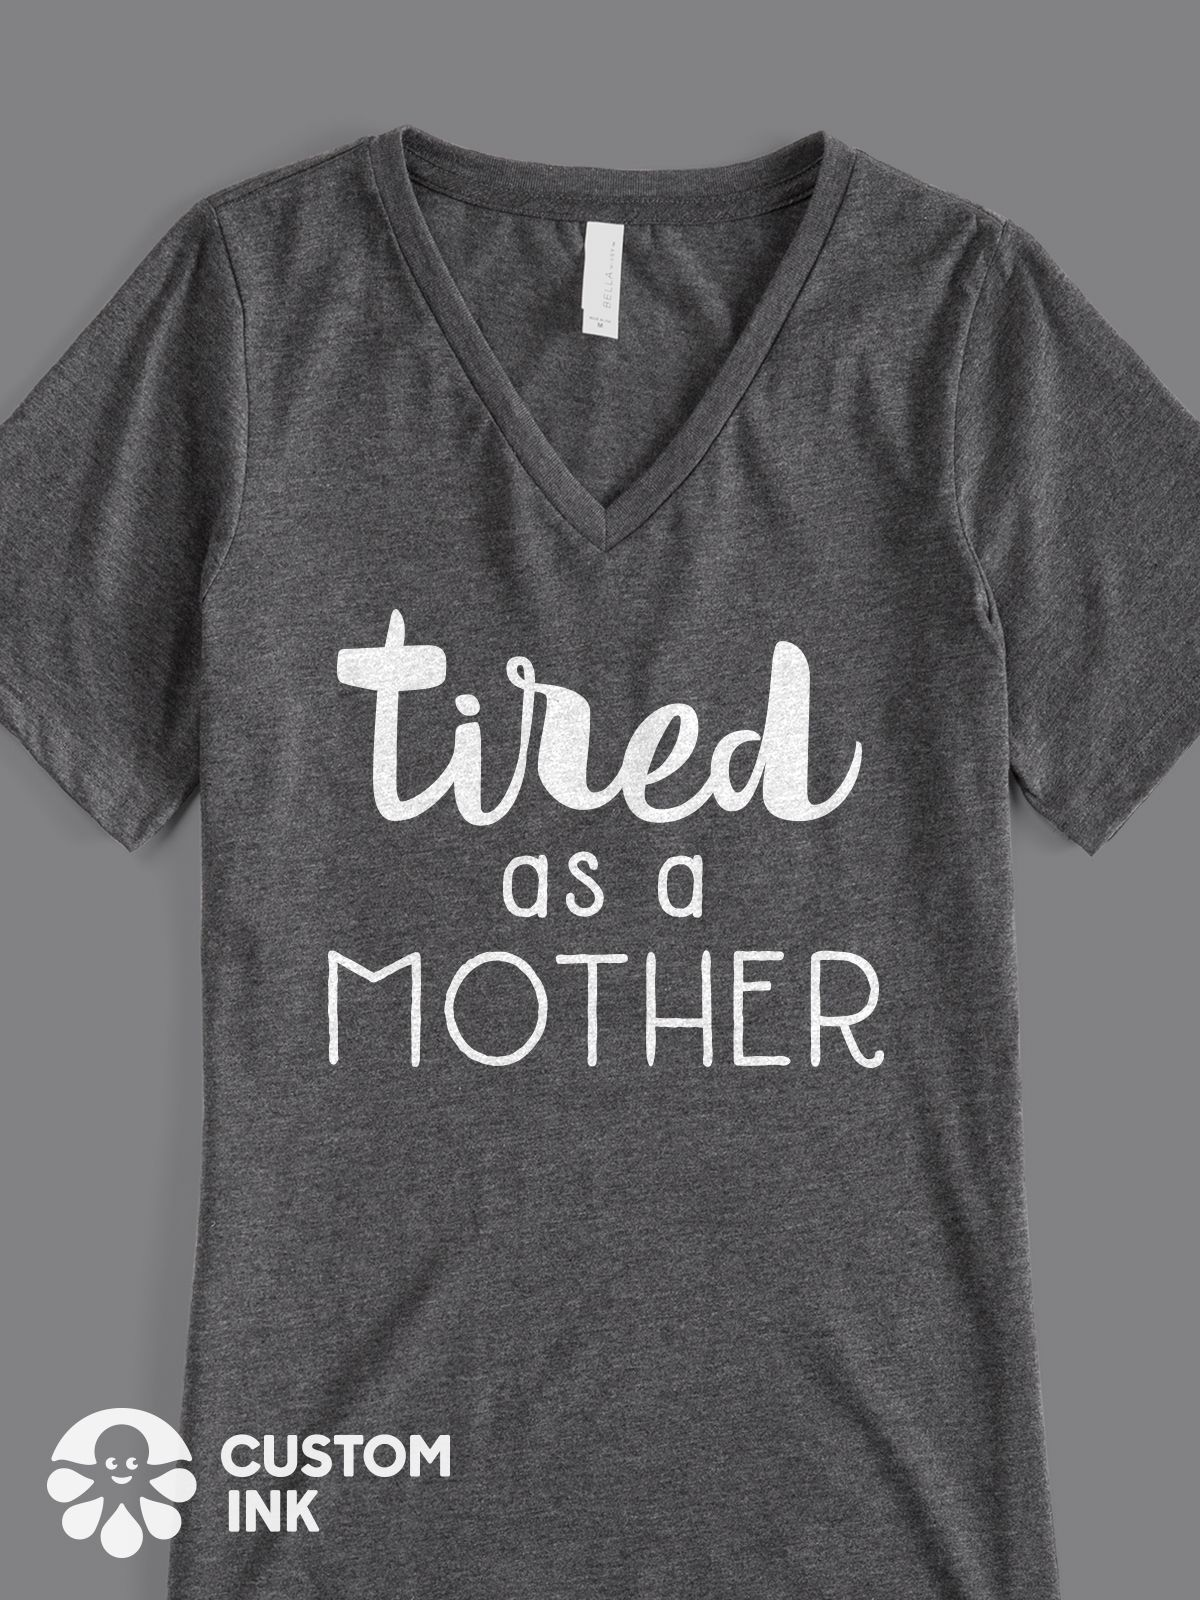 061d863e Tired as a Mother is the perfect funny saying design for your custom mom  quote shirt, t-shirt, hoodie, bag, and more. Great mom gift idea from  daughter or ...